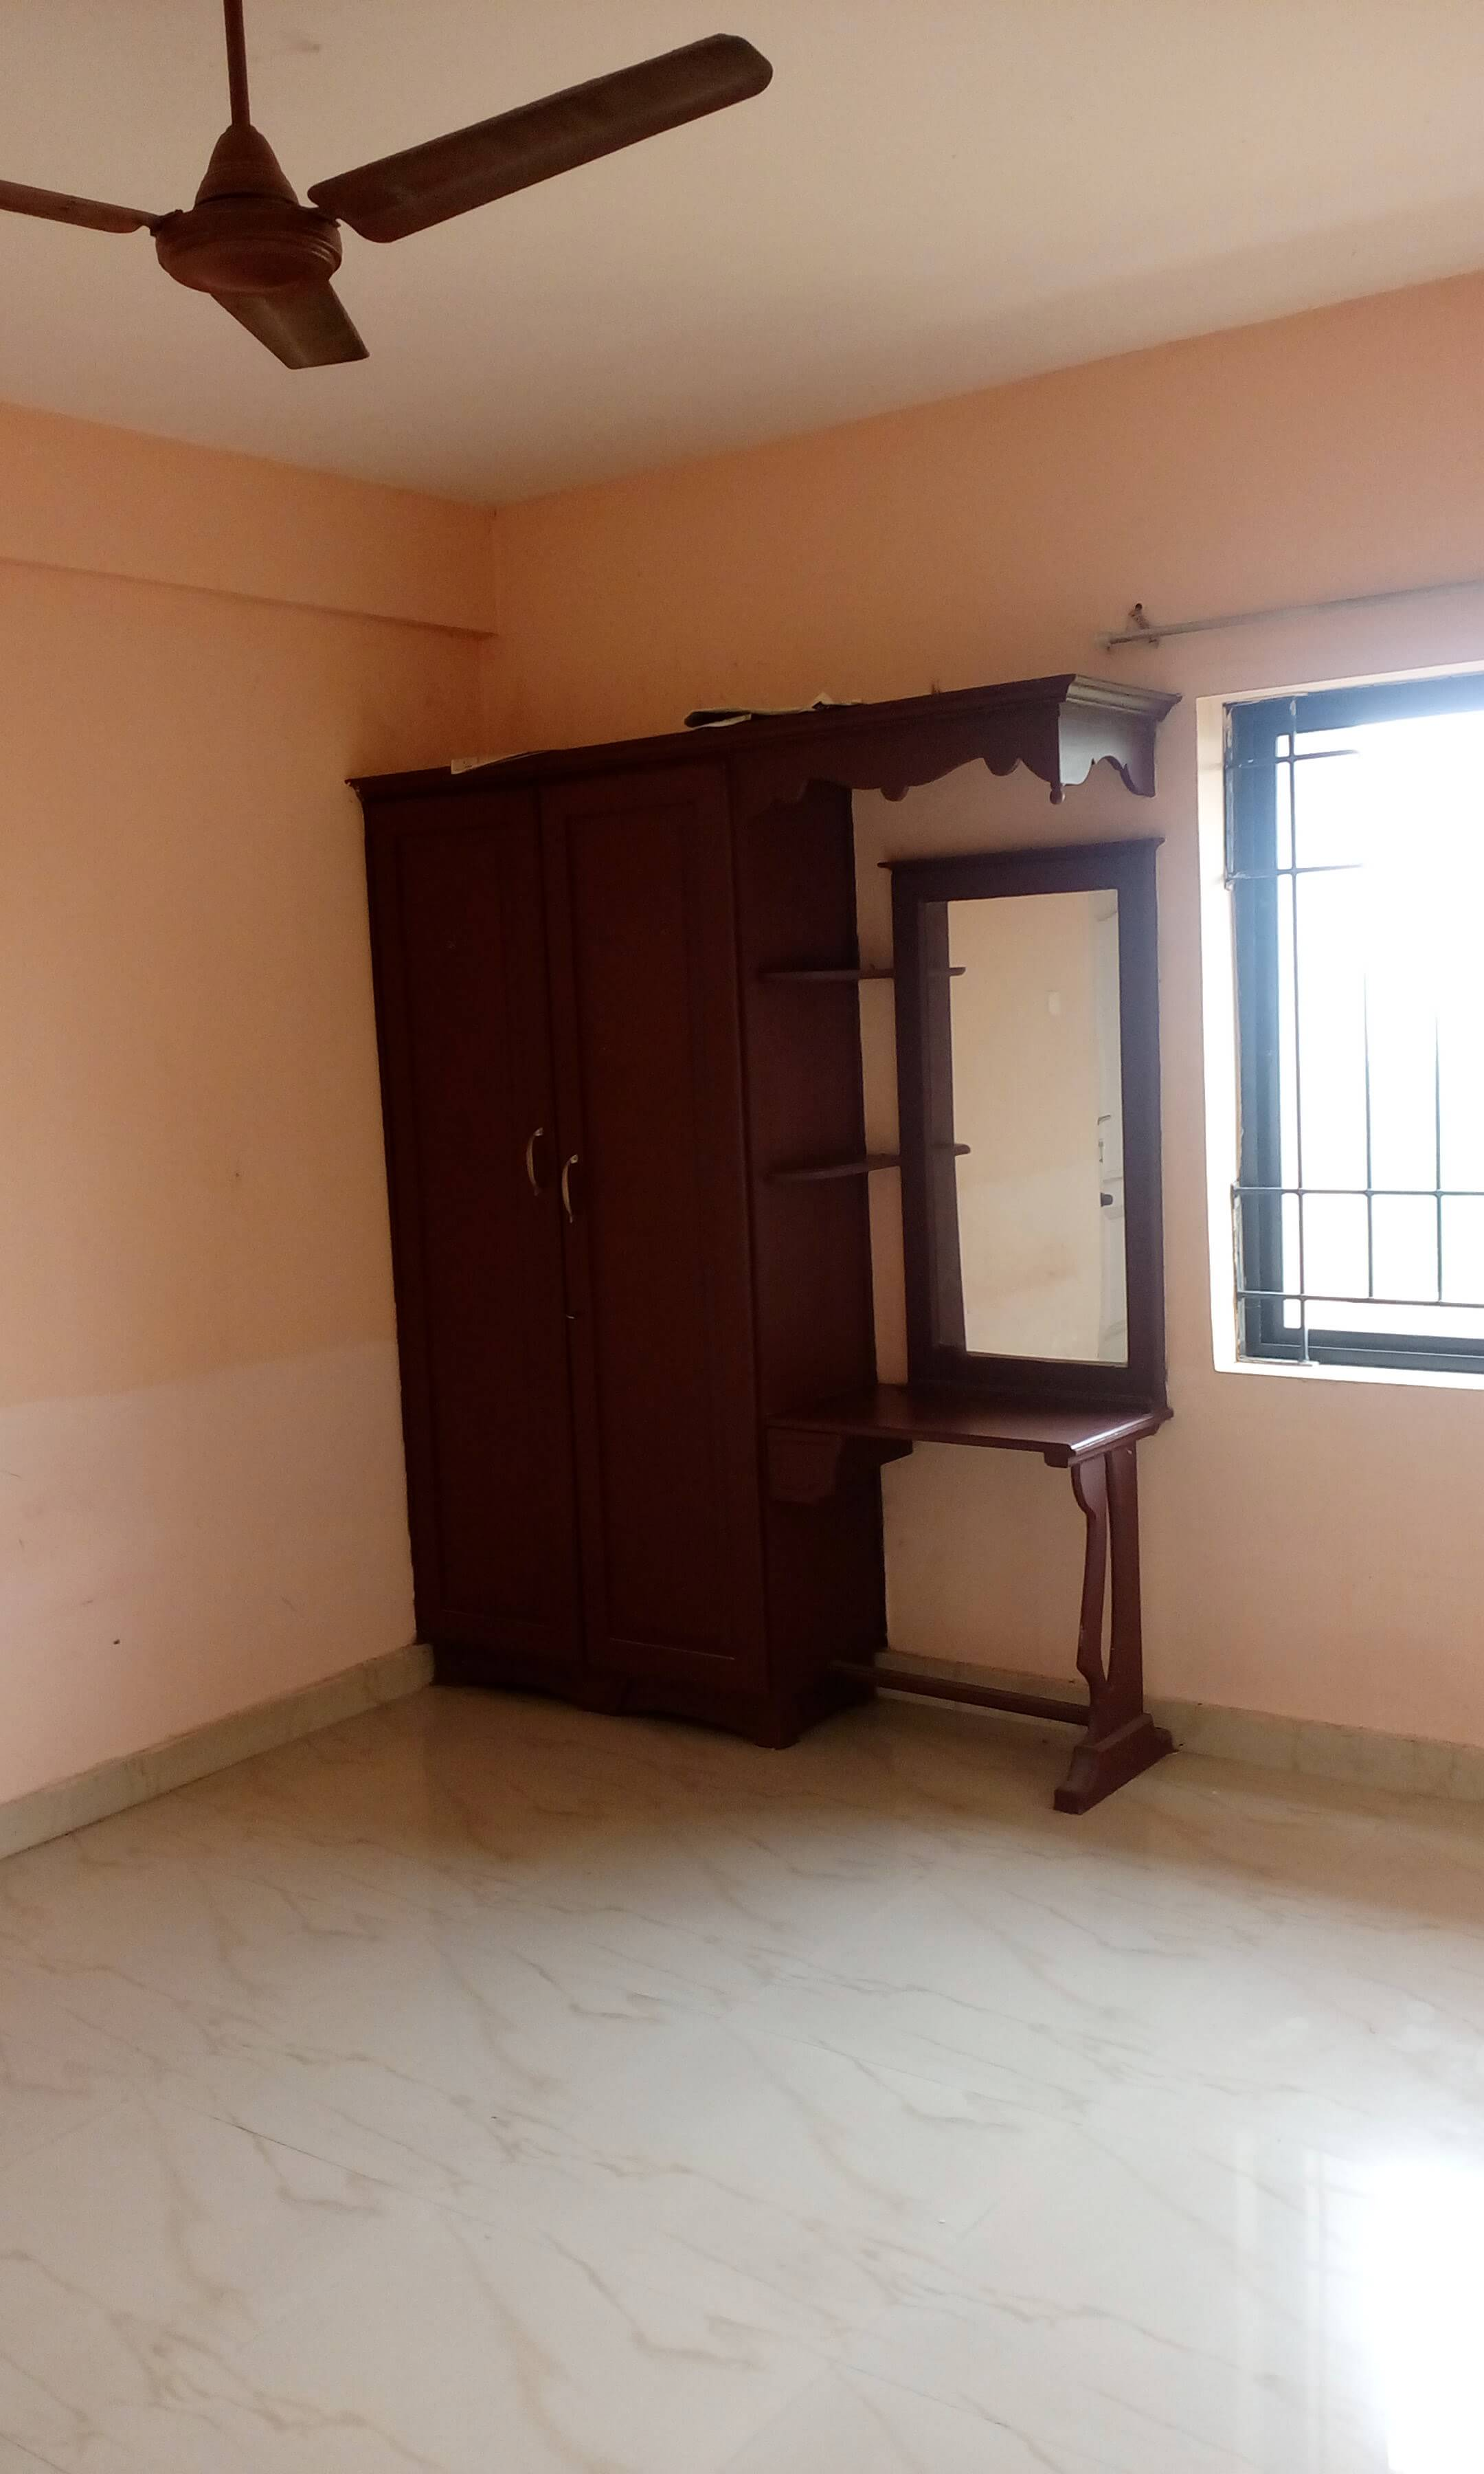 3BHK Flat with lifts Central Water Treatment and purifier installed for rent at Kakanad ,Kochi